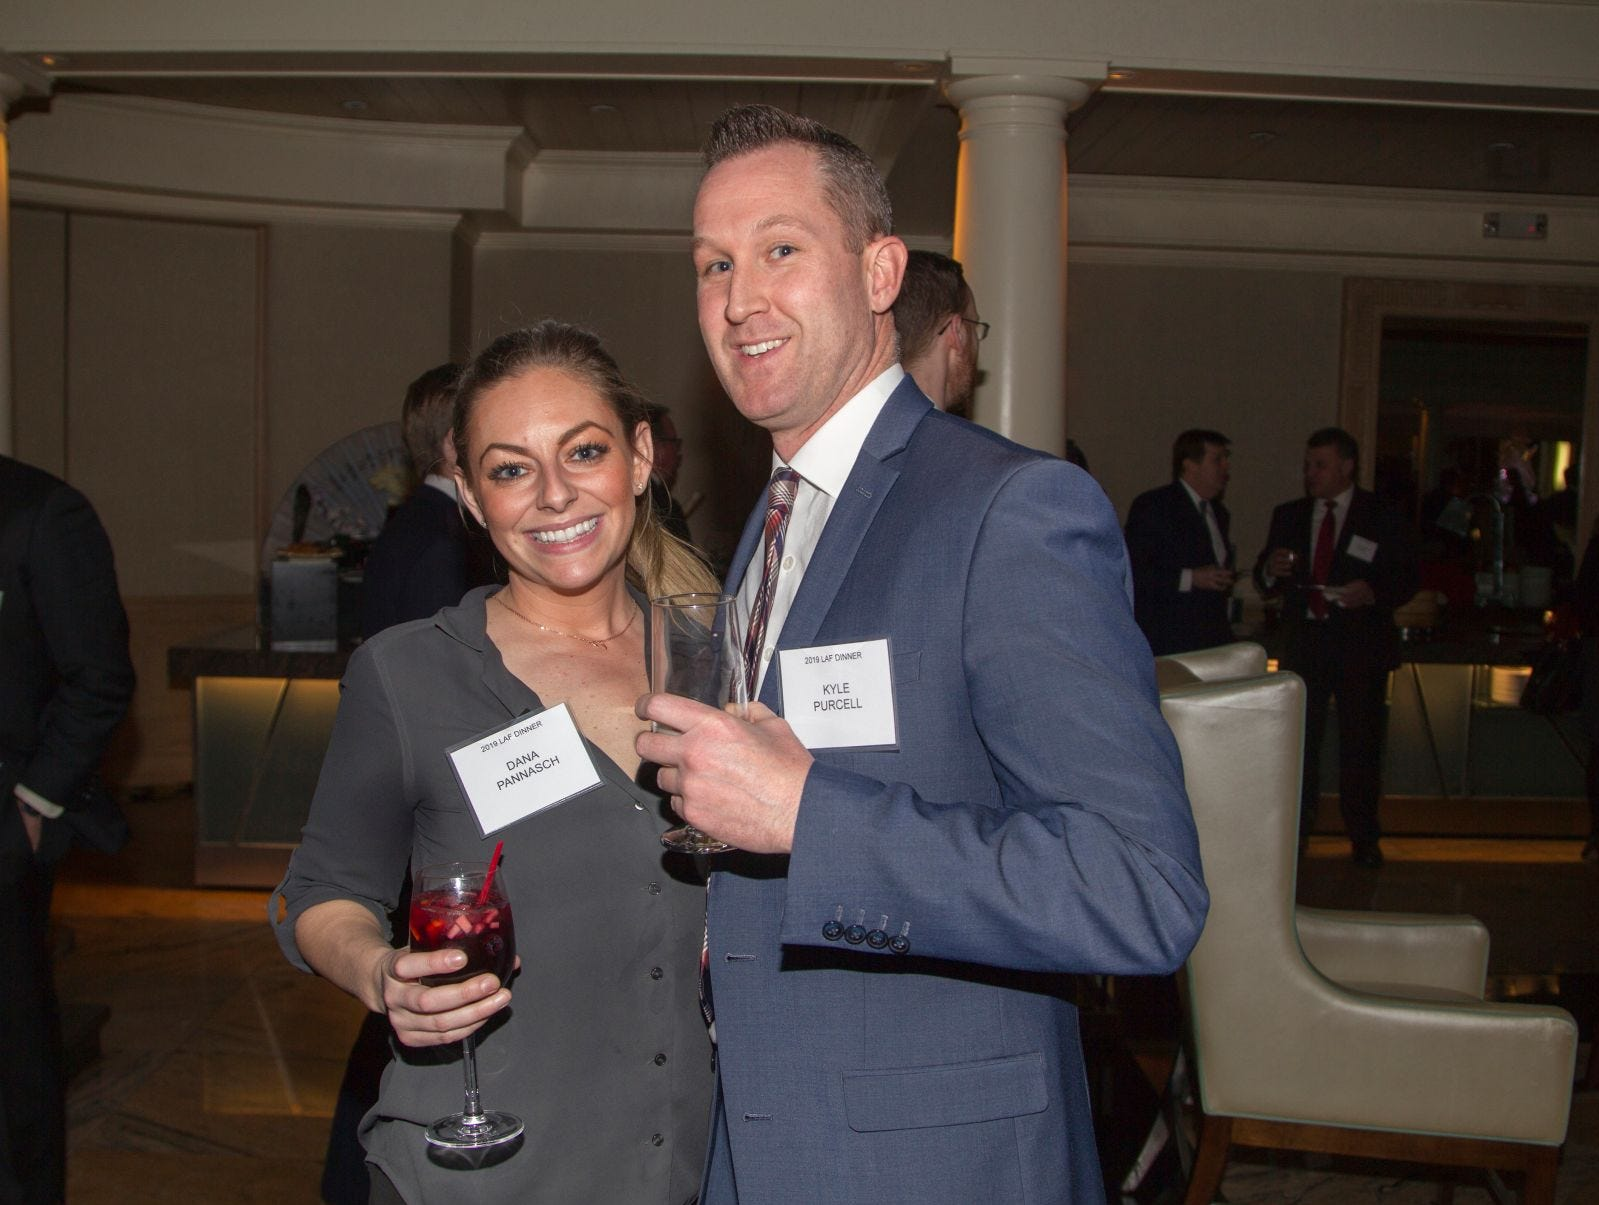 Dana Pannasch, Kyle Purcell. Eva's Village hosted its second annual Lawyers, Accountants and Financial Professionals Benefit Dinner at Westmount Country Club in Woodland Park. 02/21/2019